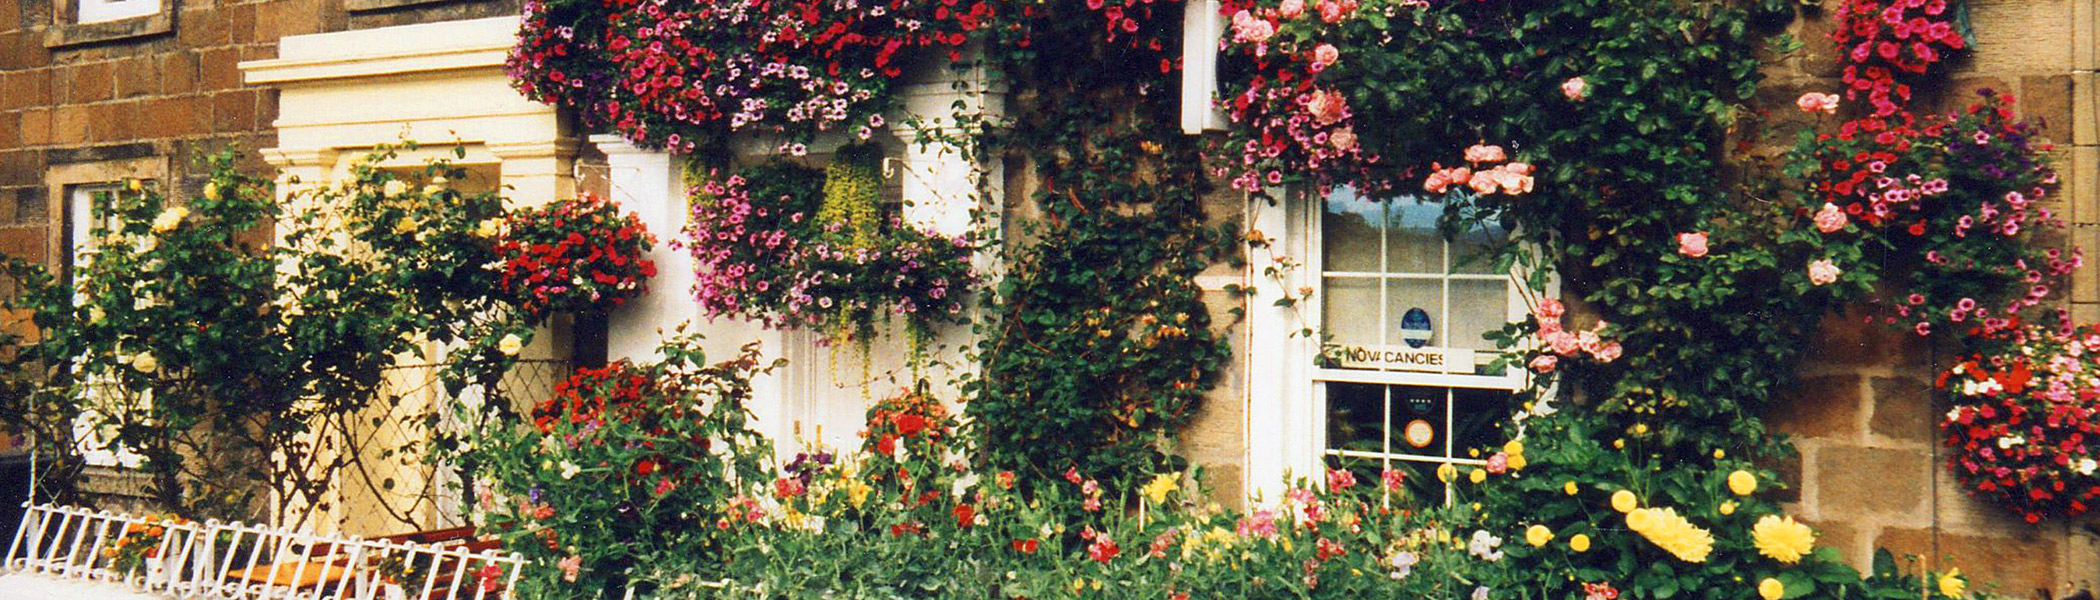 forth guest house Stirling in bloom